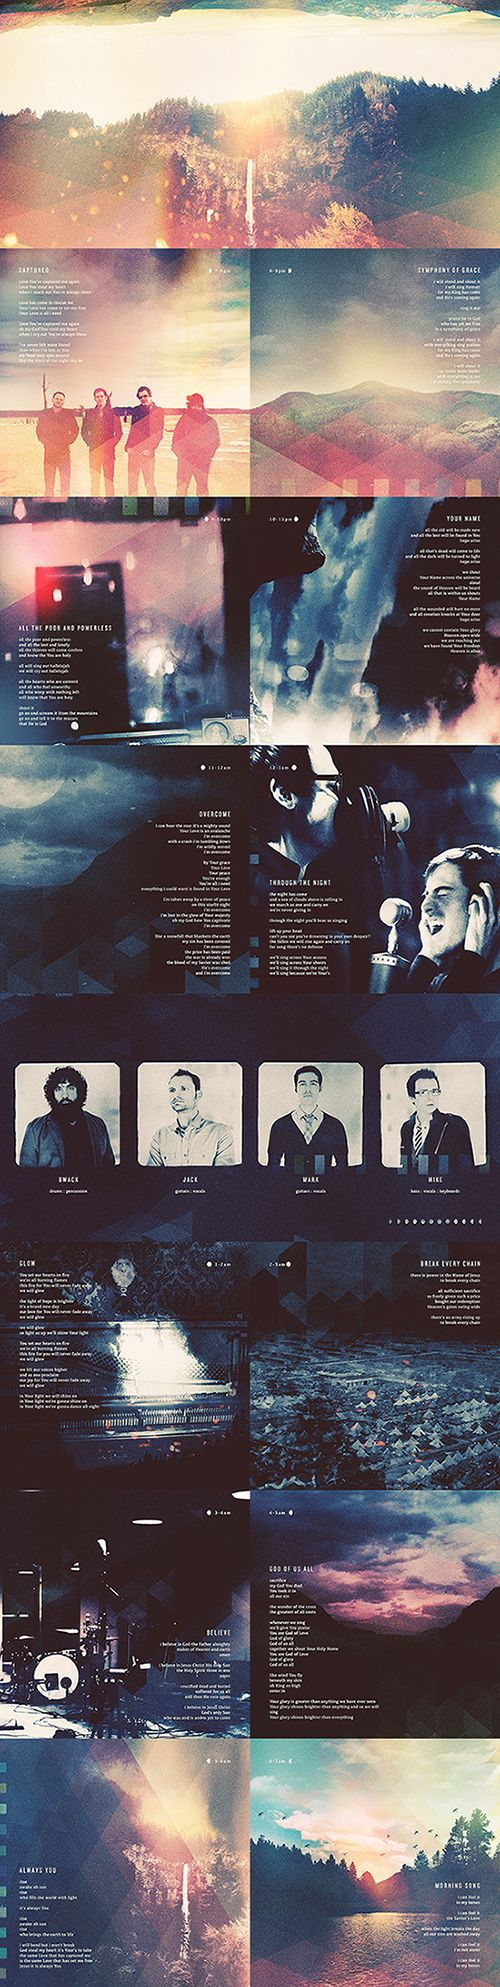 29 best CD cover images on Pinterest | Graphics, Cd design and ...